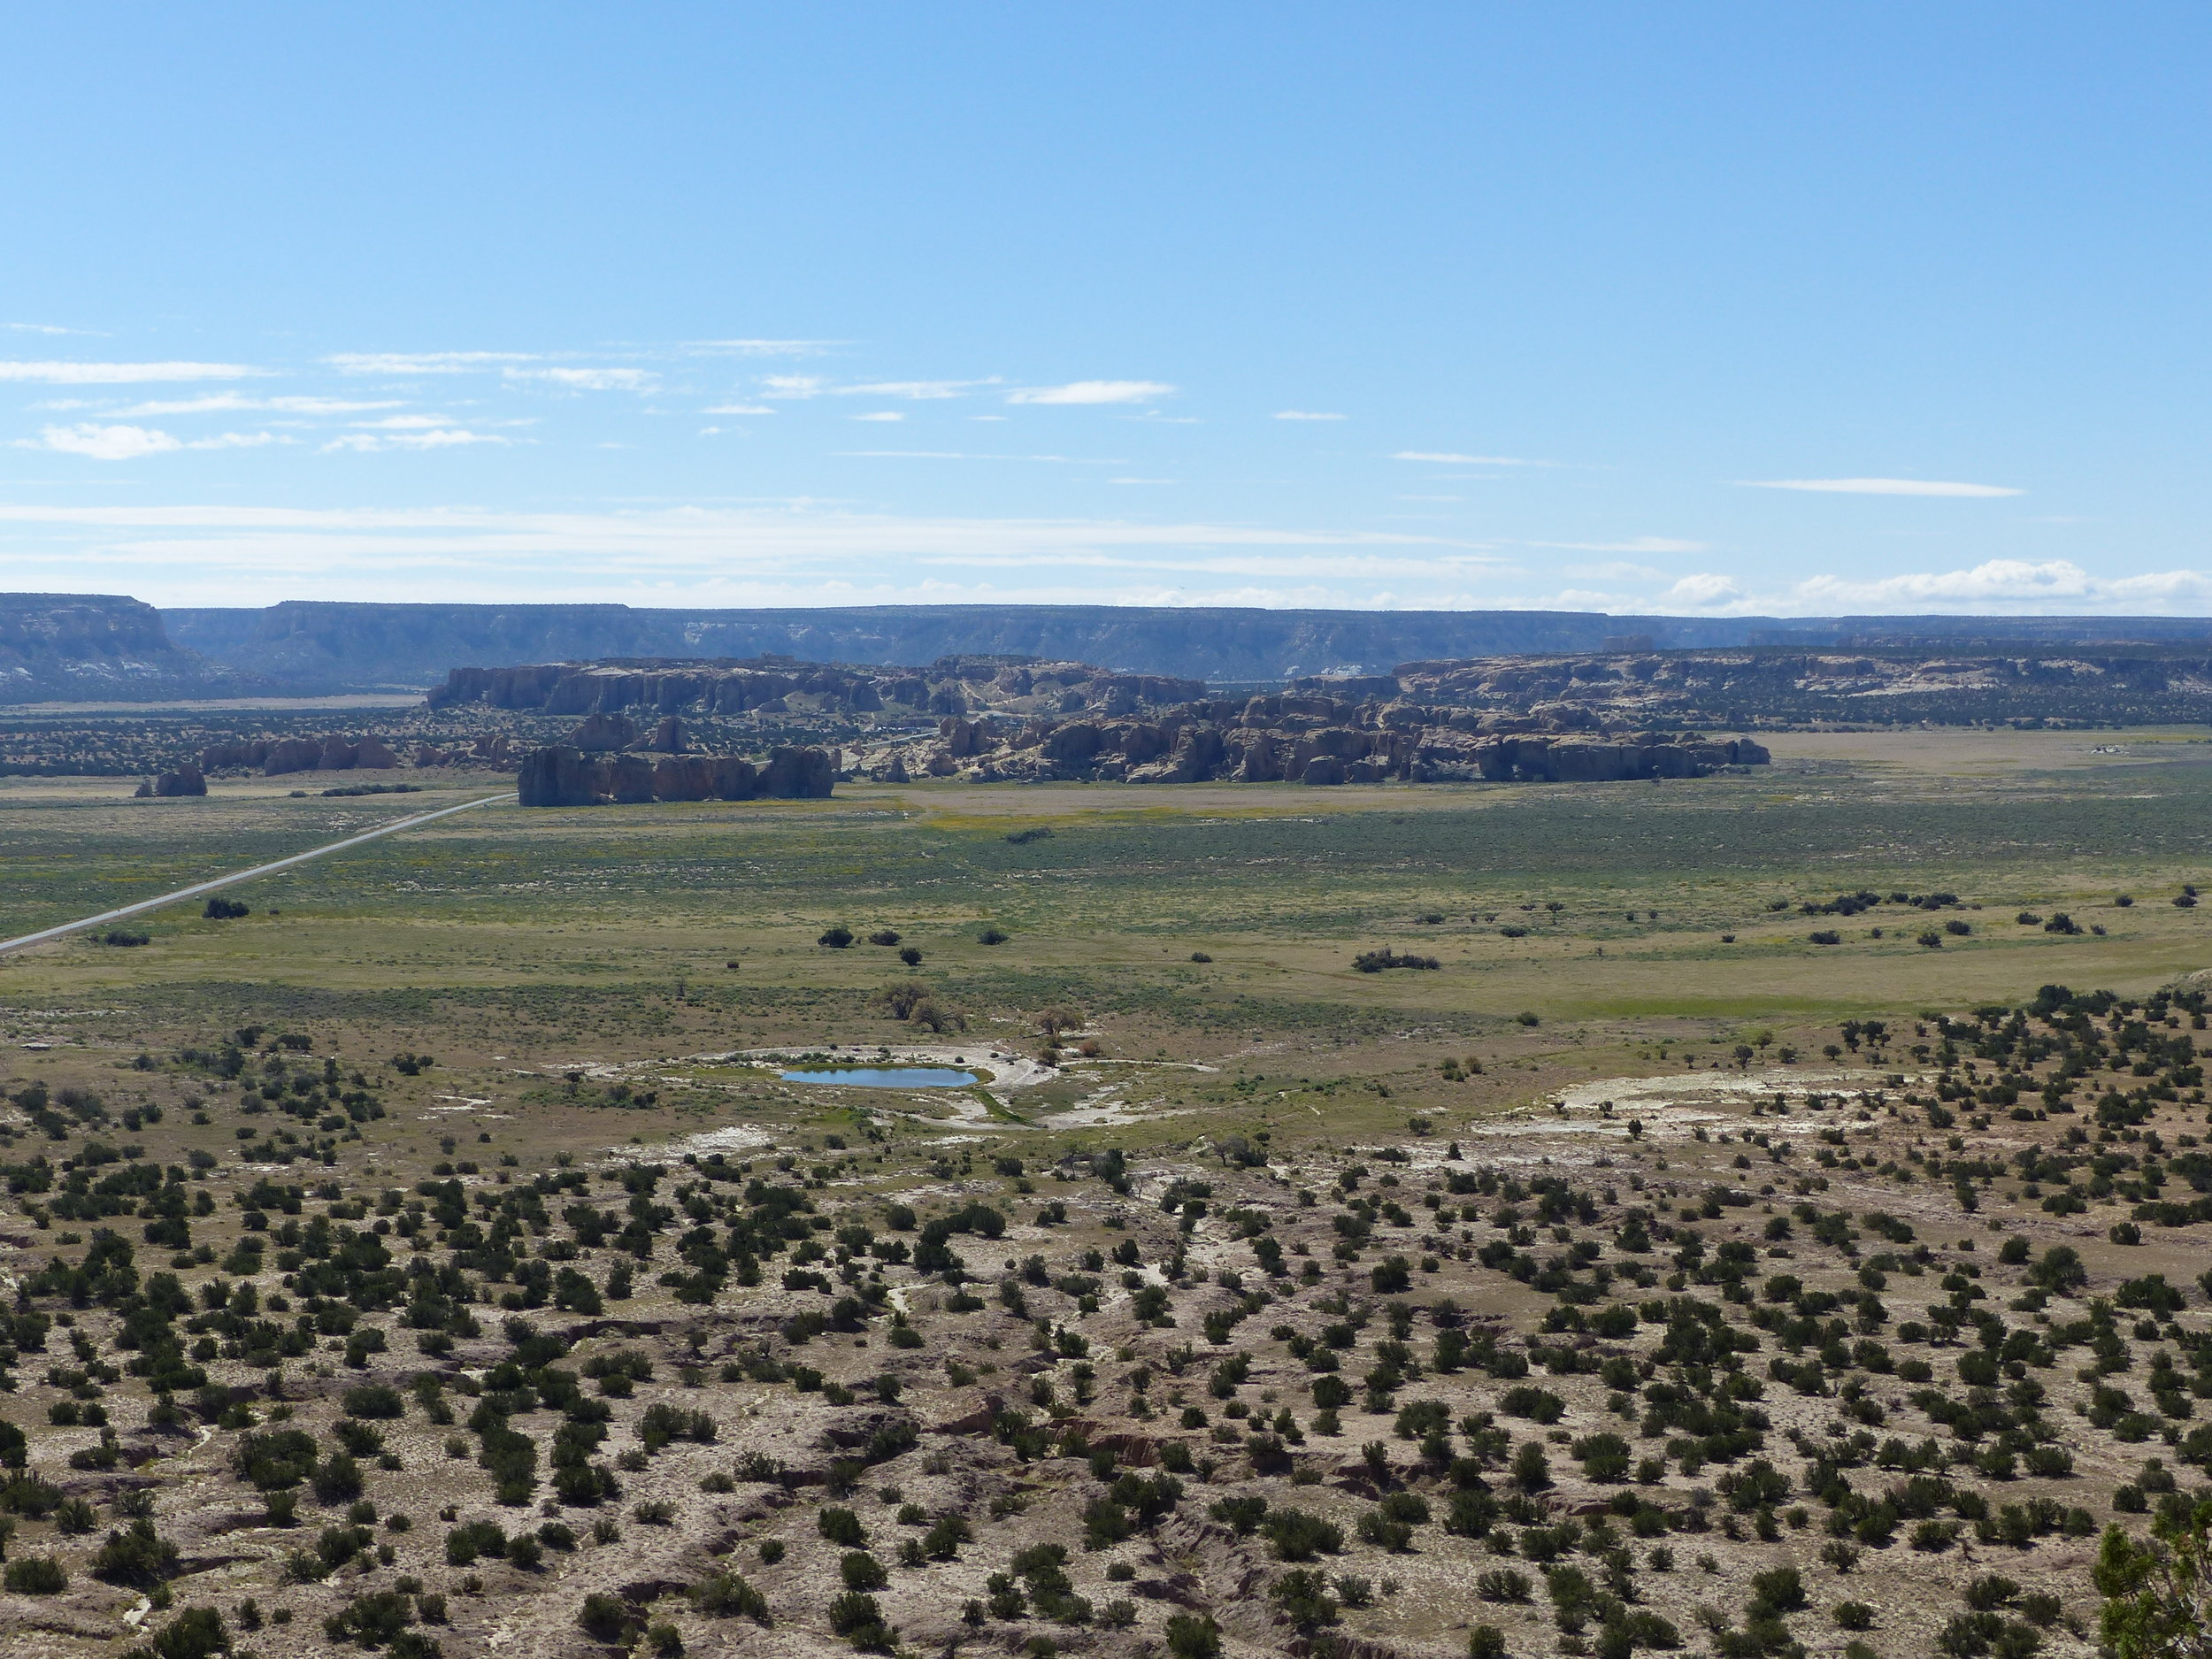 Looking out over Acoma, and the watering hole